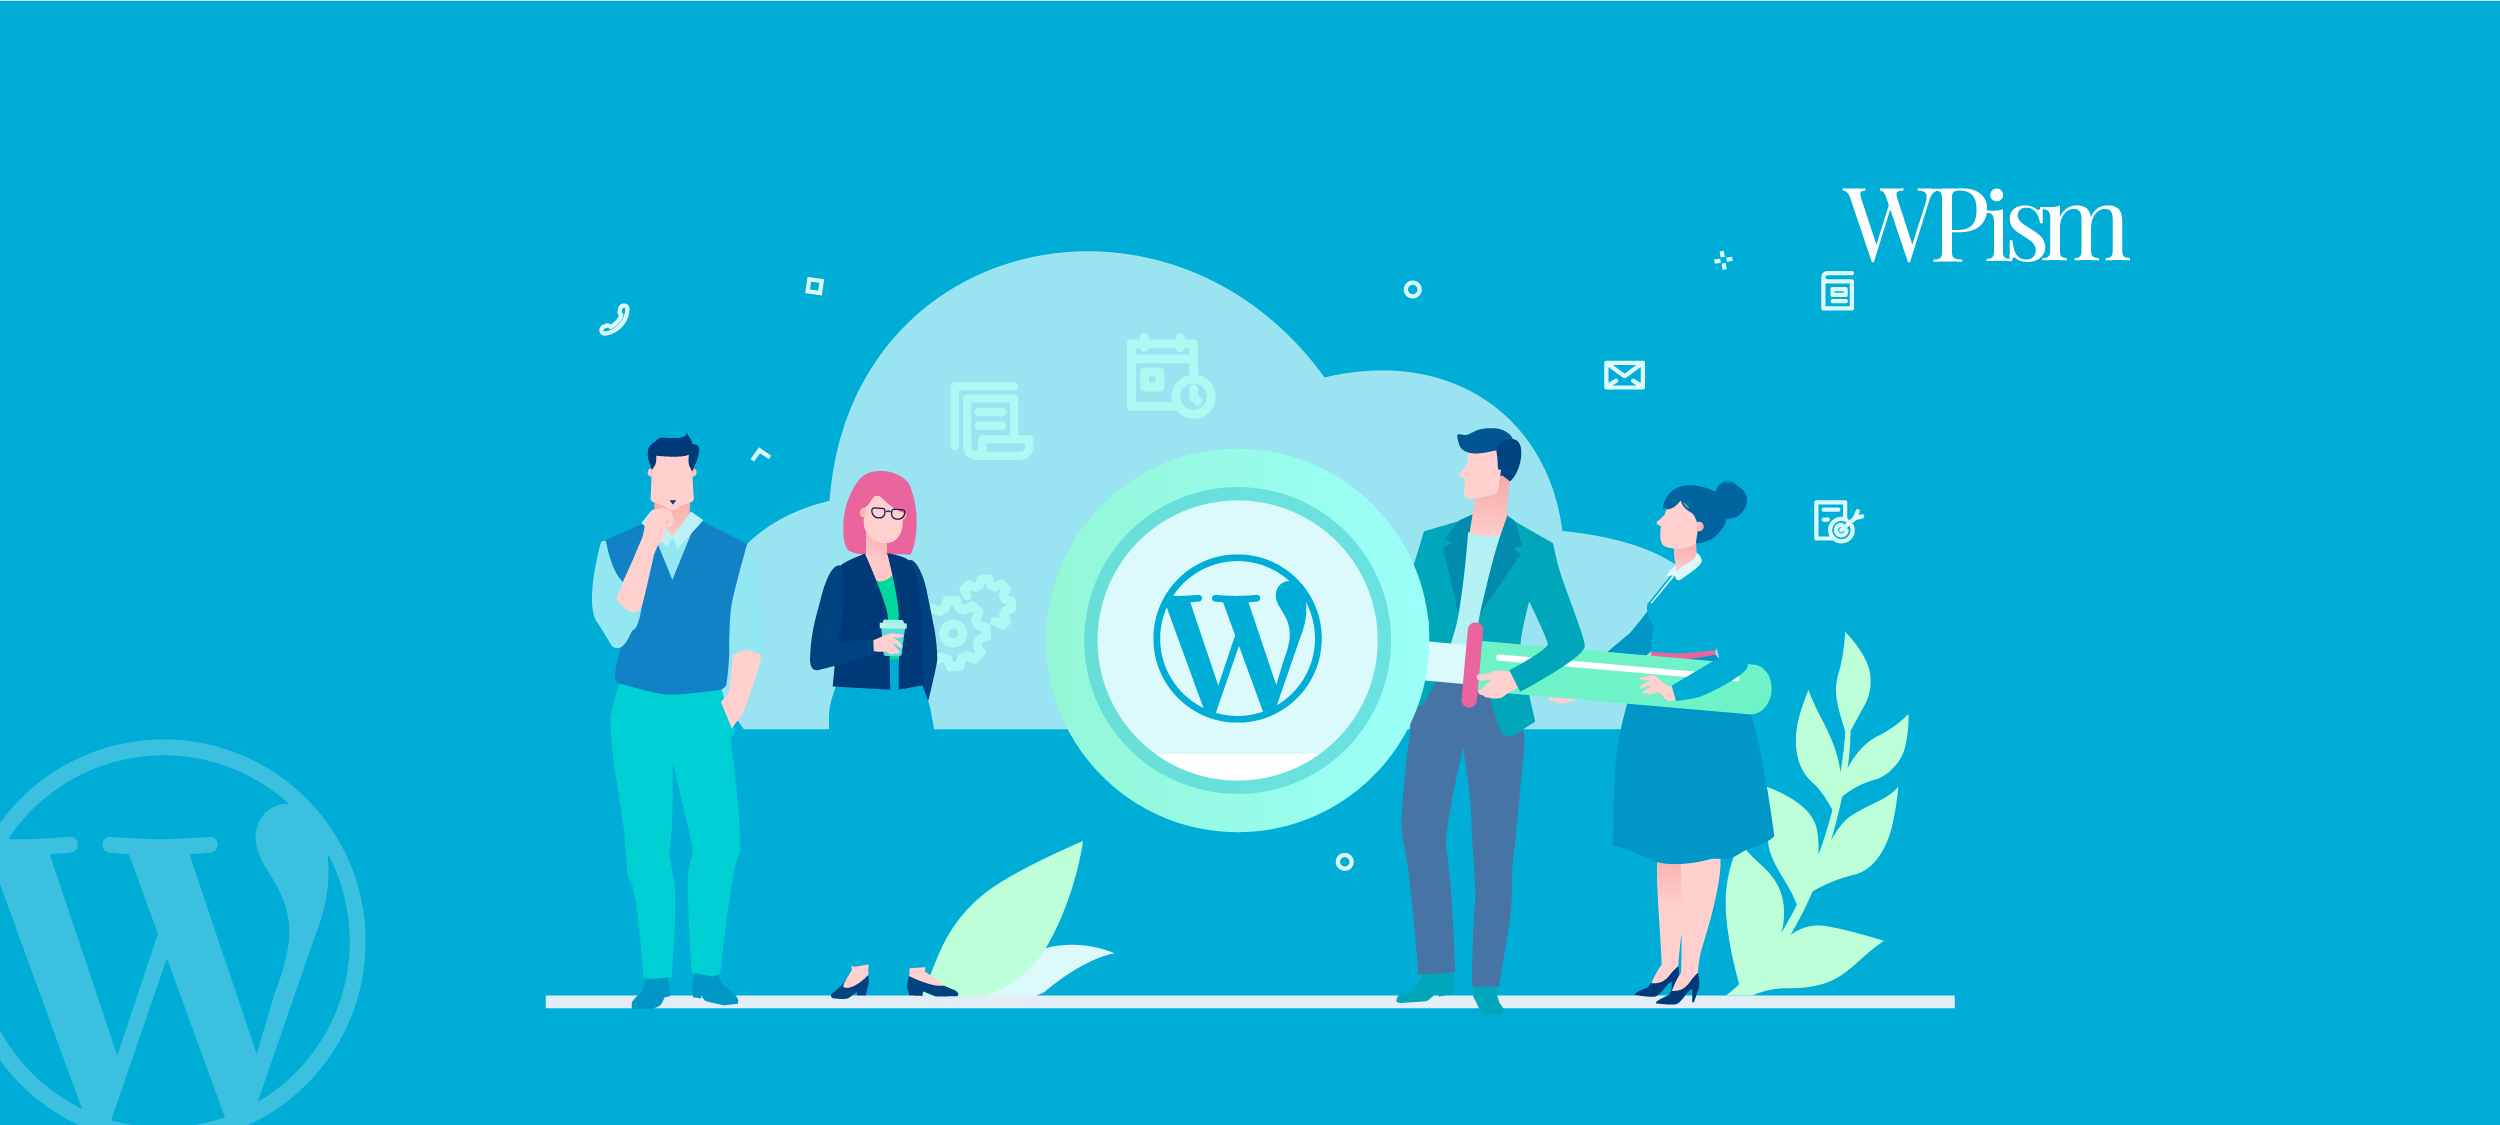 How to Disable WordPress Search Feature